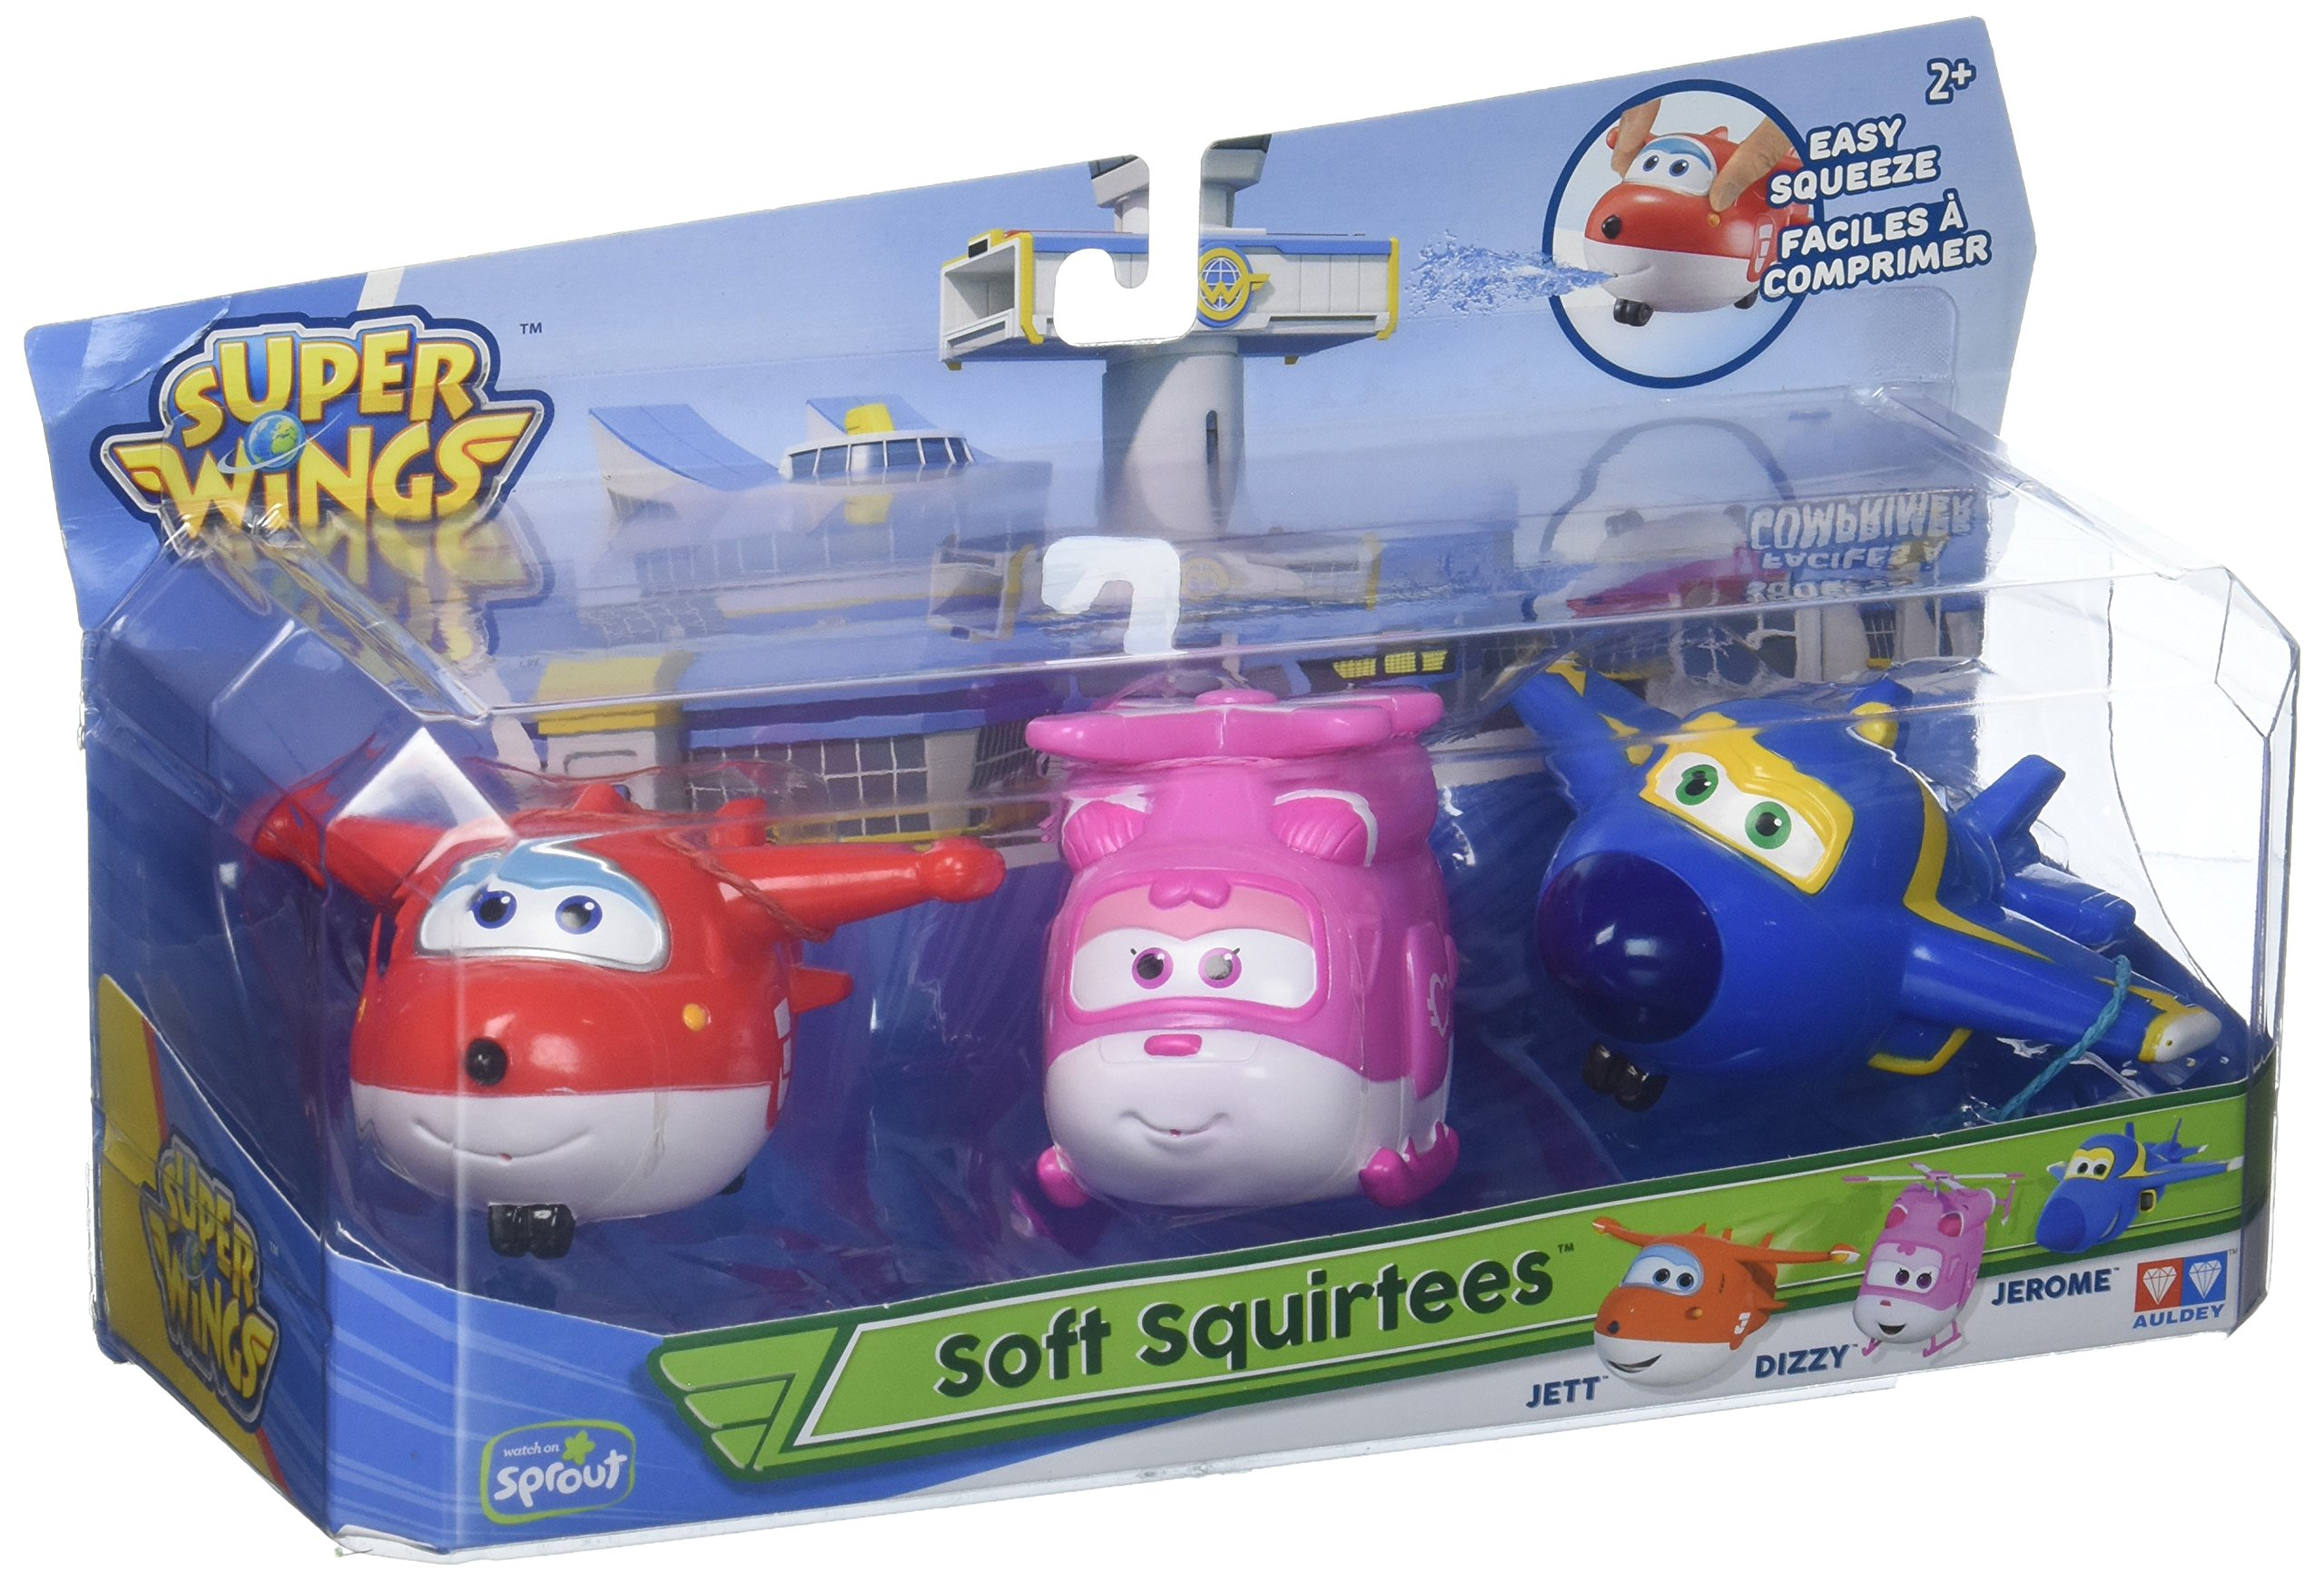 Super Wings - Water Squirtees for The Bath- 3 Pack Toy Figure